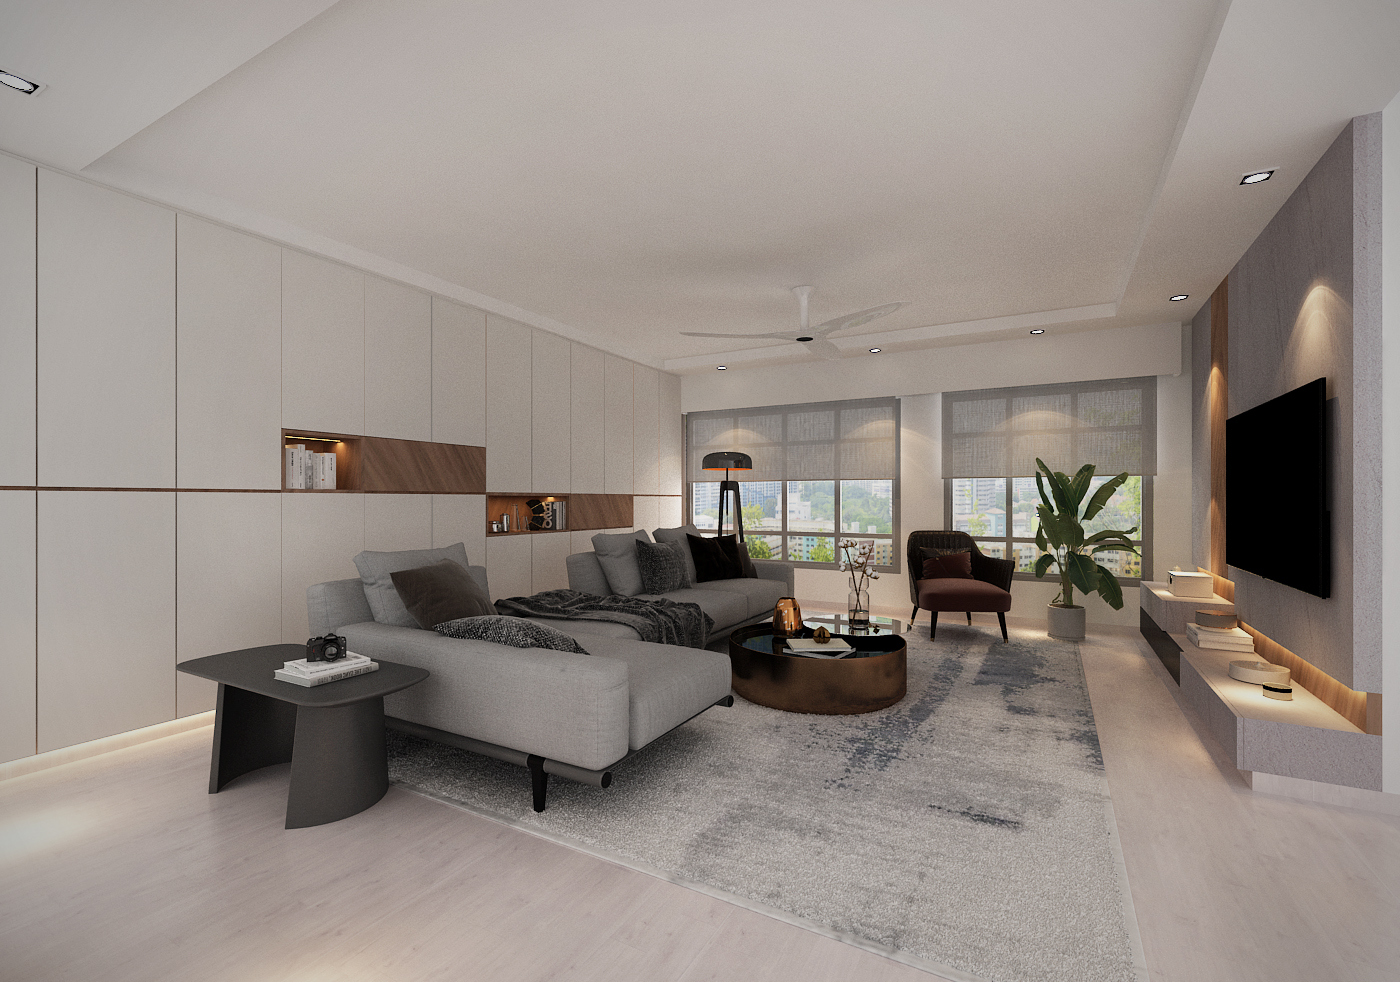 Northshore Straitsview 5 Room Bto Flat Interior Design Idea